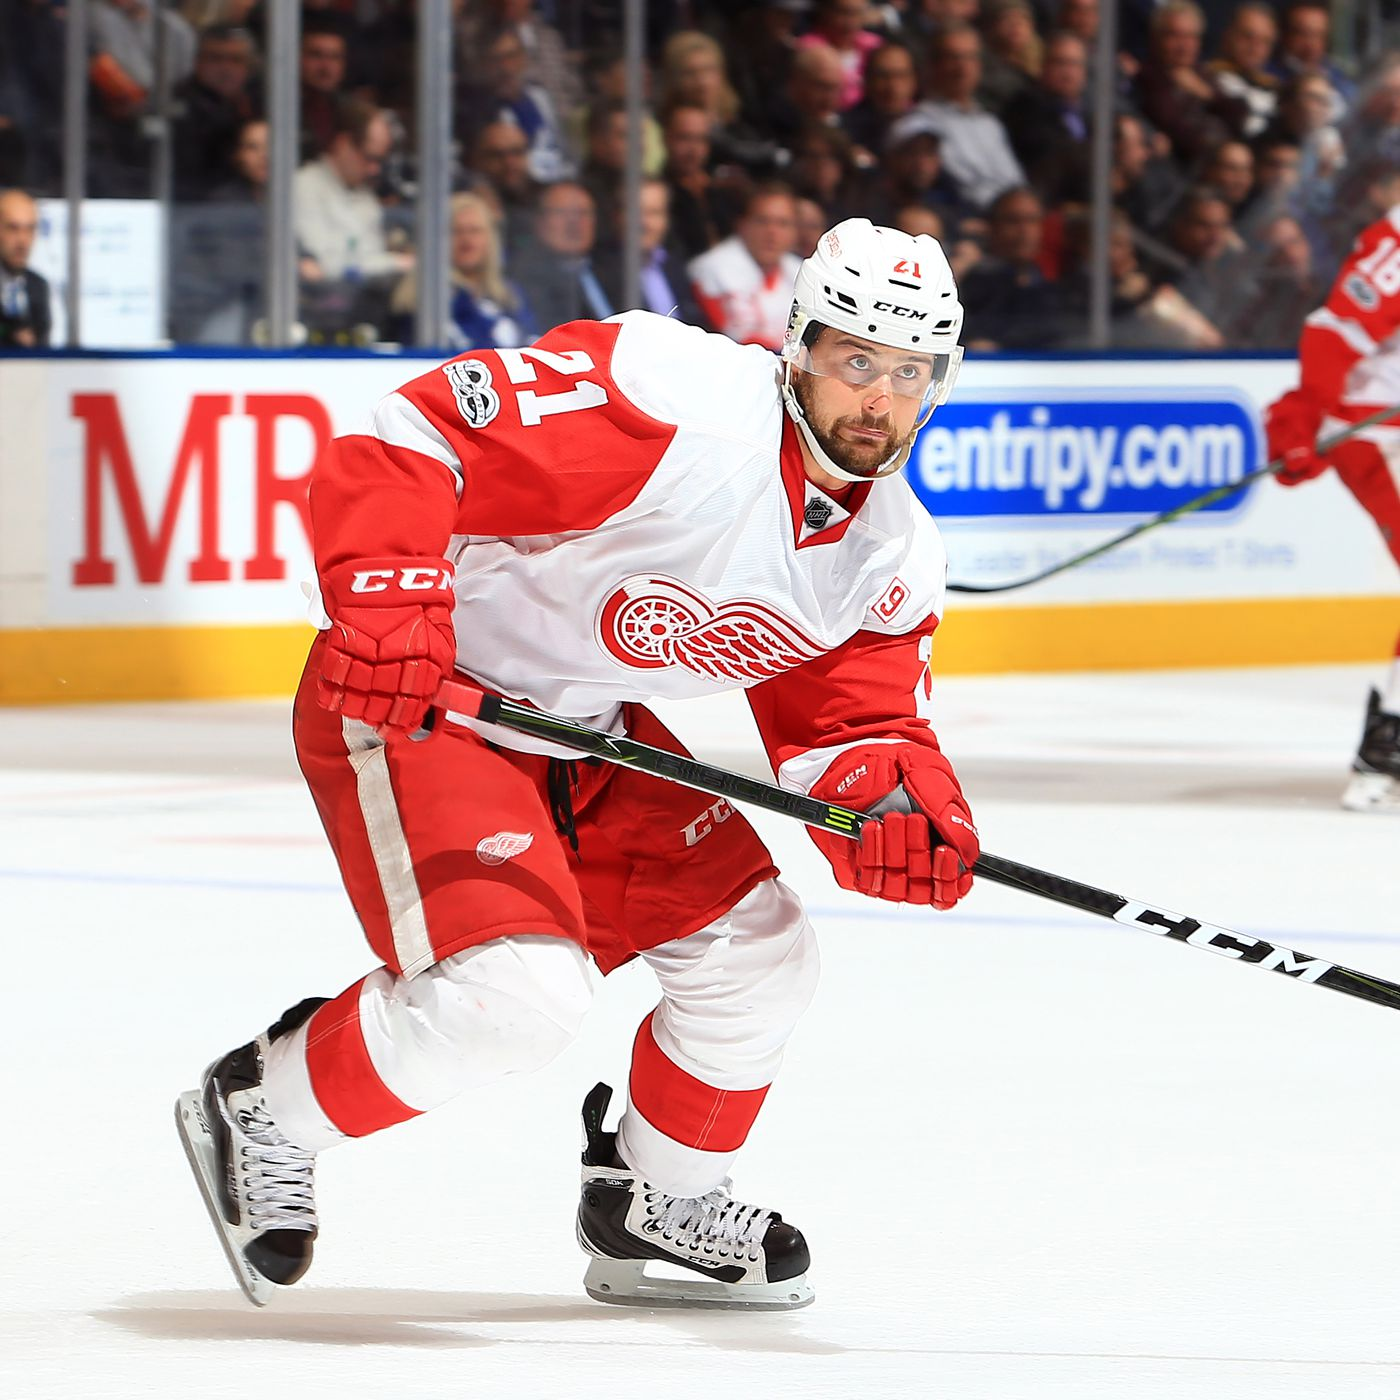 Tomas Tatar Arbitration Ask 5 3m Red Wings Offer 4 1m Winging It In Motown